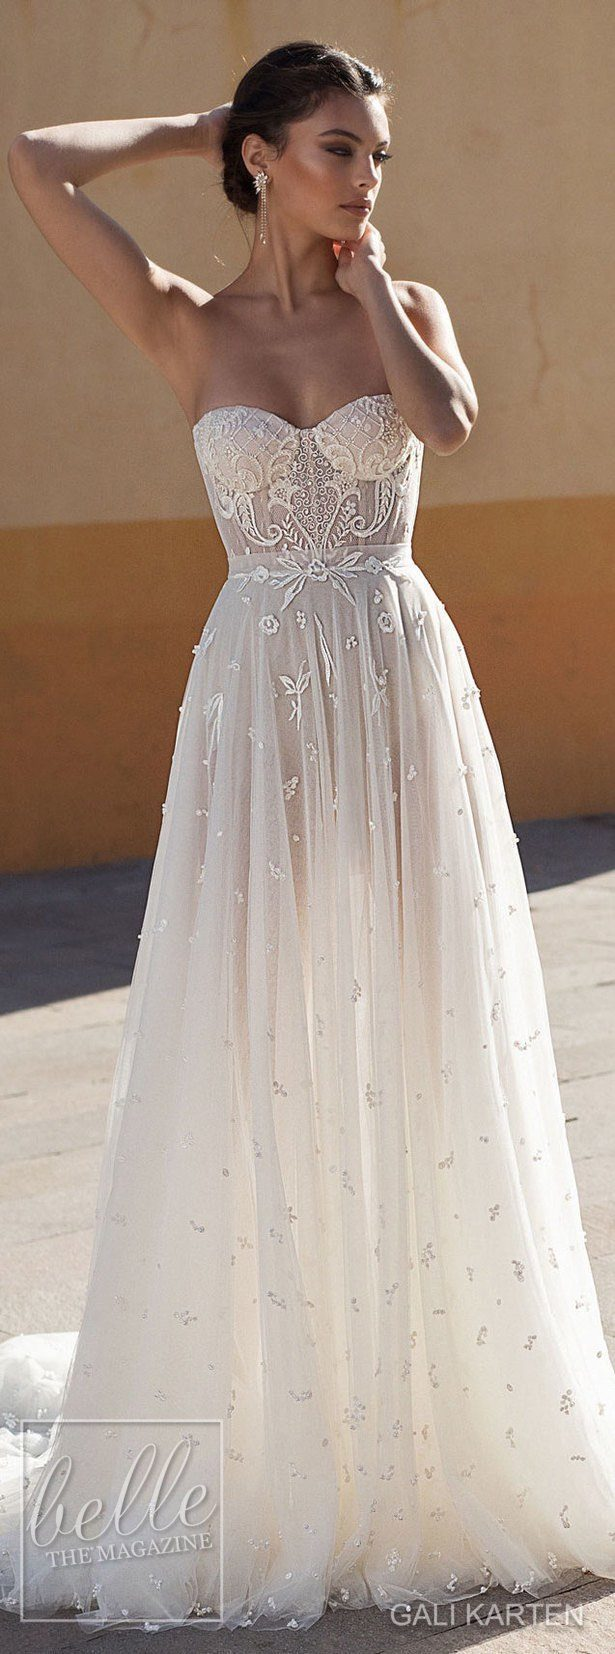 685ecafba49 ... Gali Karten Wedding Dress 2018 - Burano Bridal Collection ...